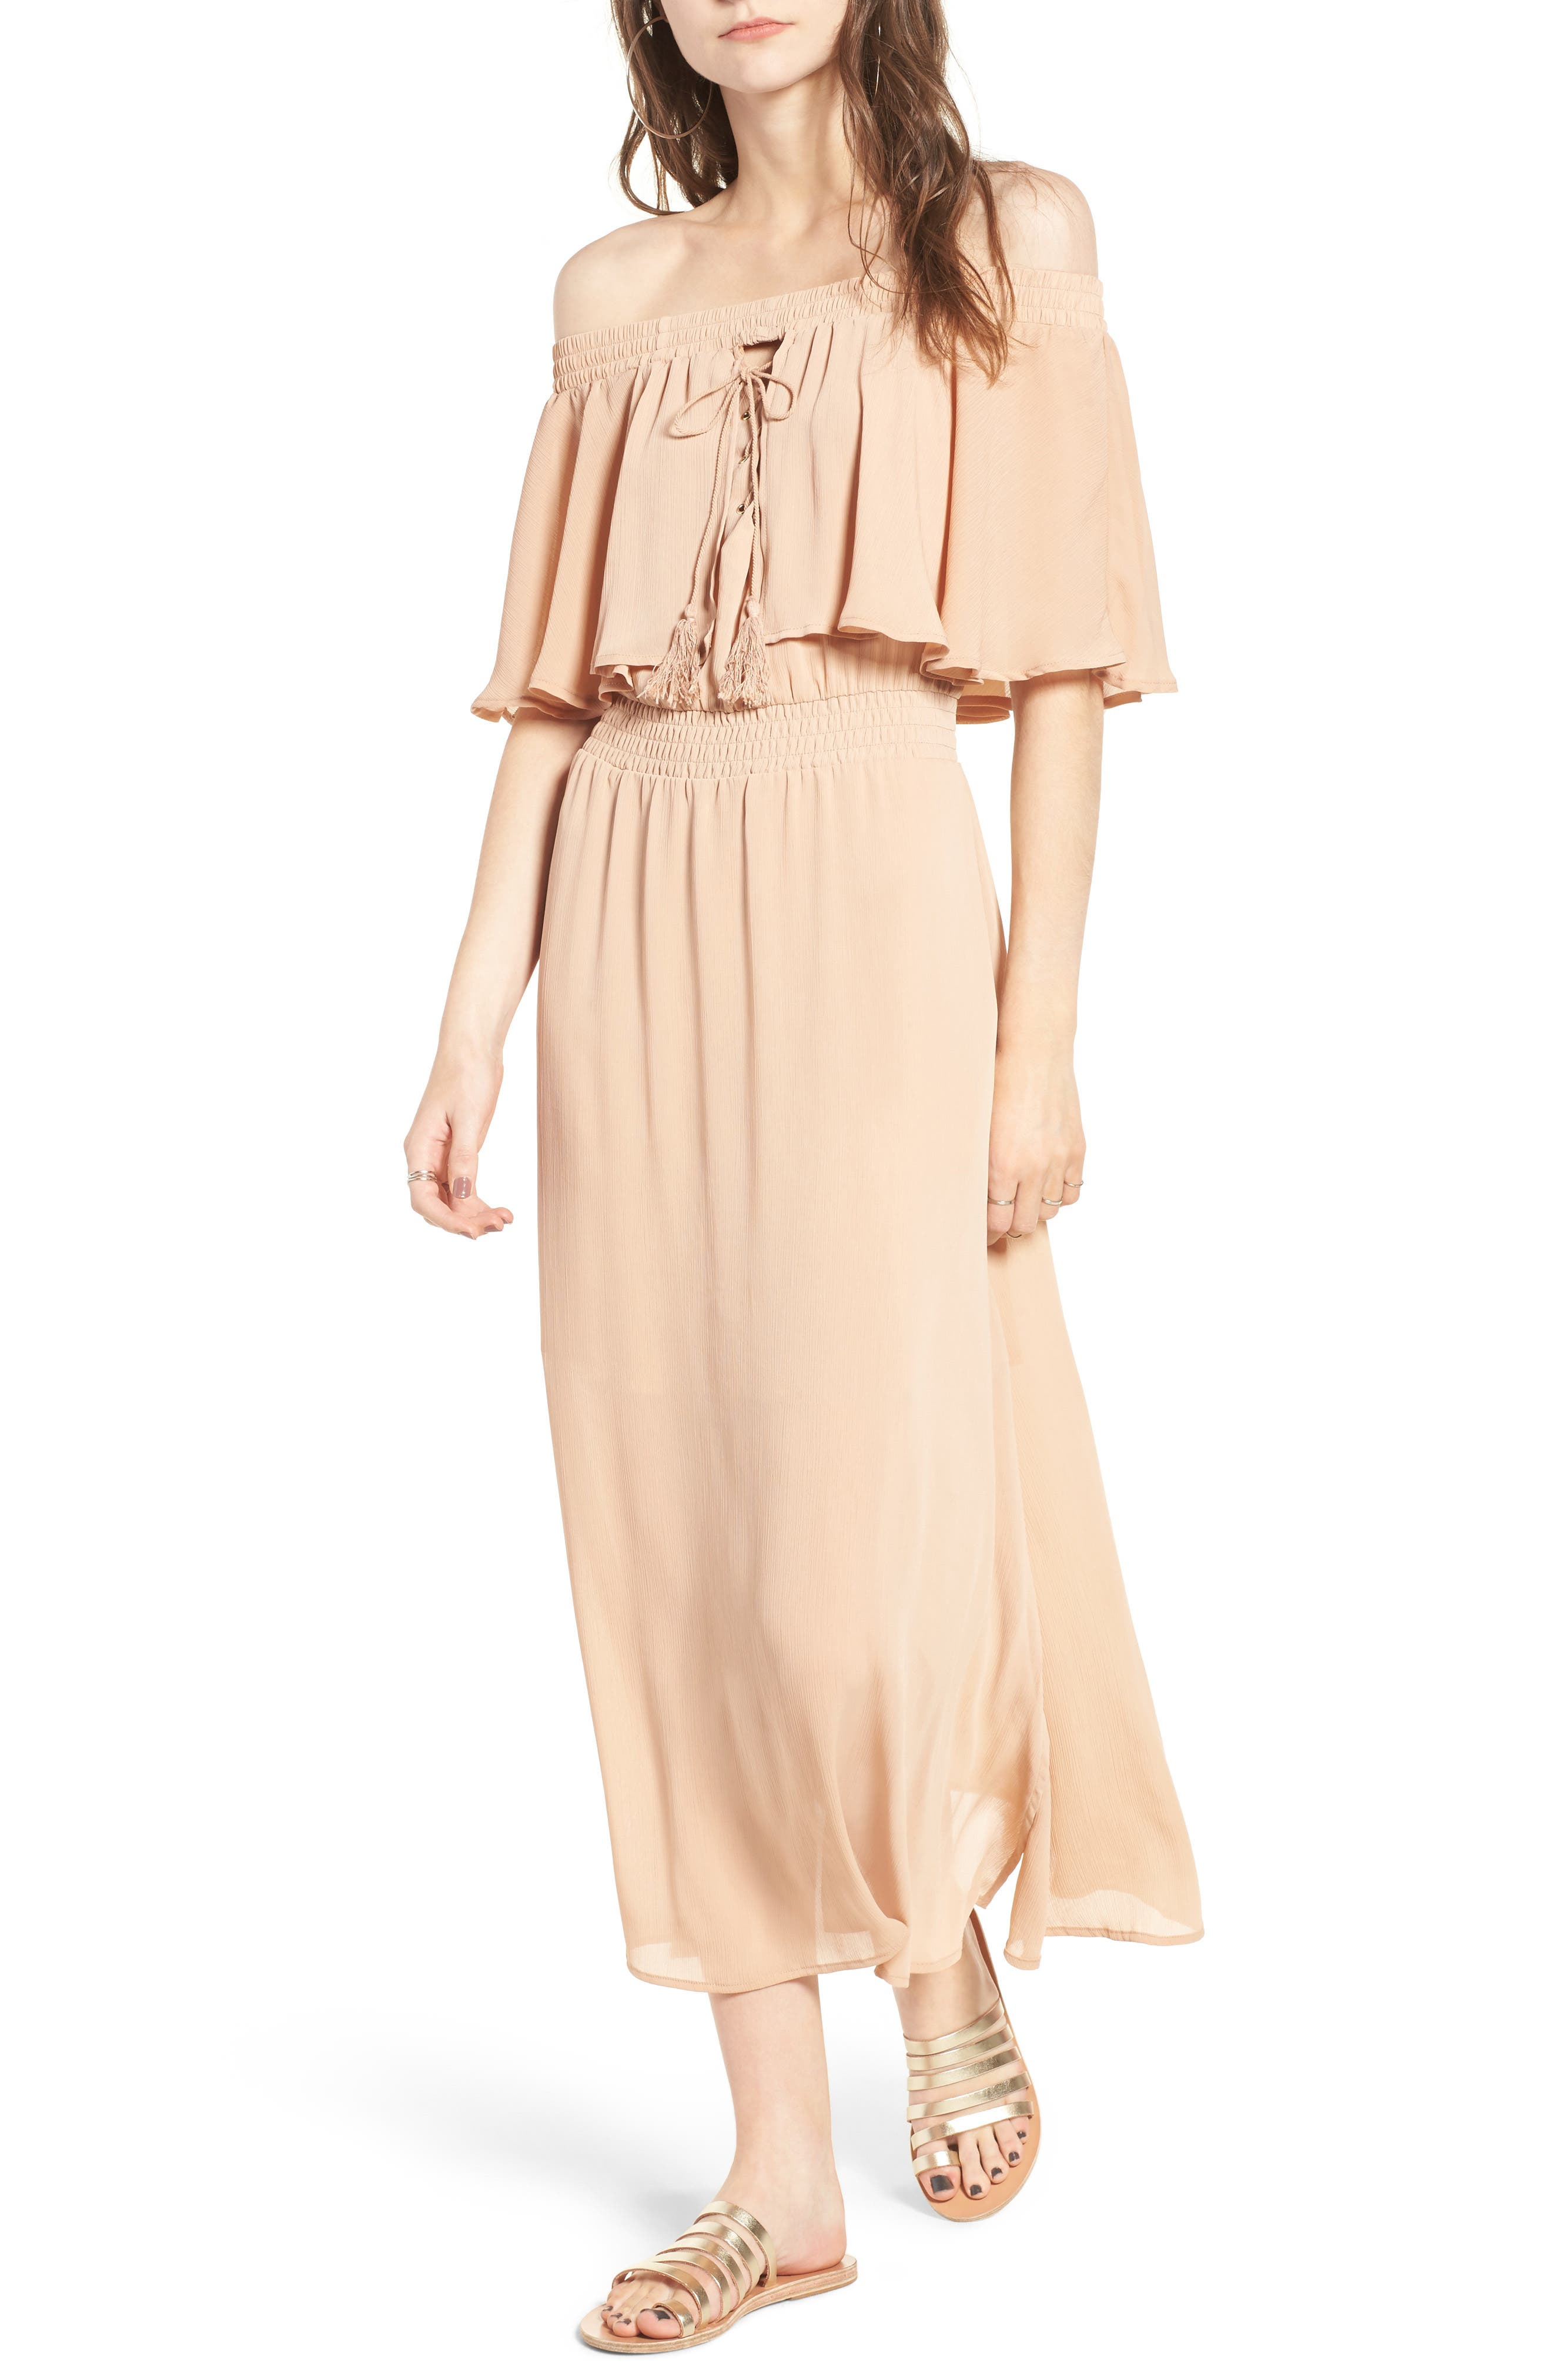 Touch the Sun Off the Shoulder Dress,                             Main thumbnail 2, color,